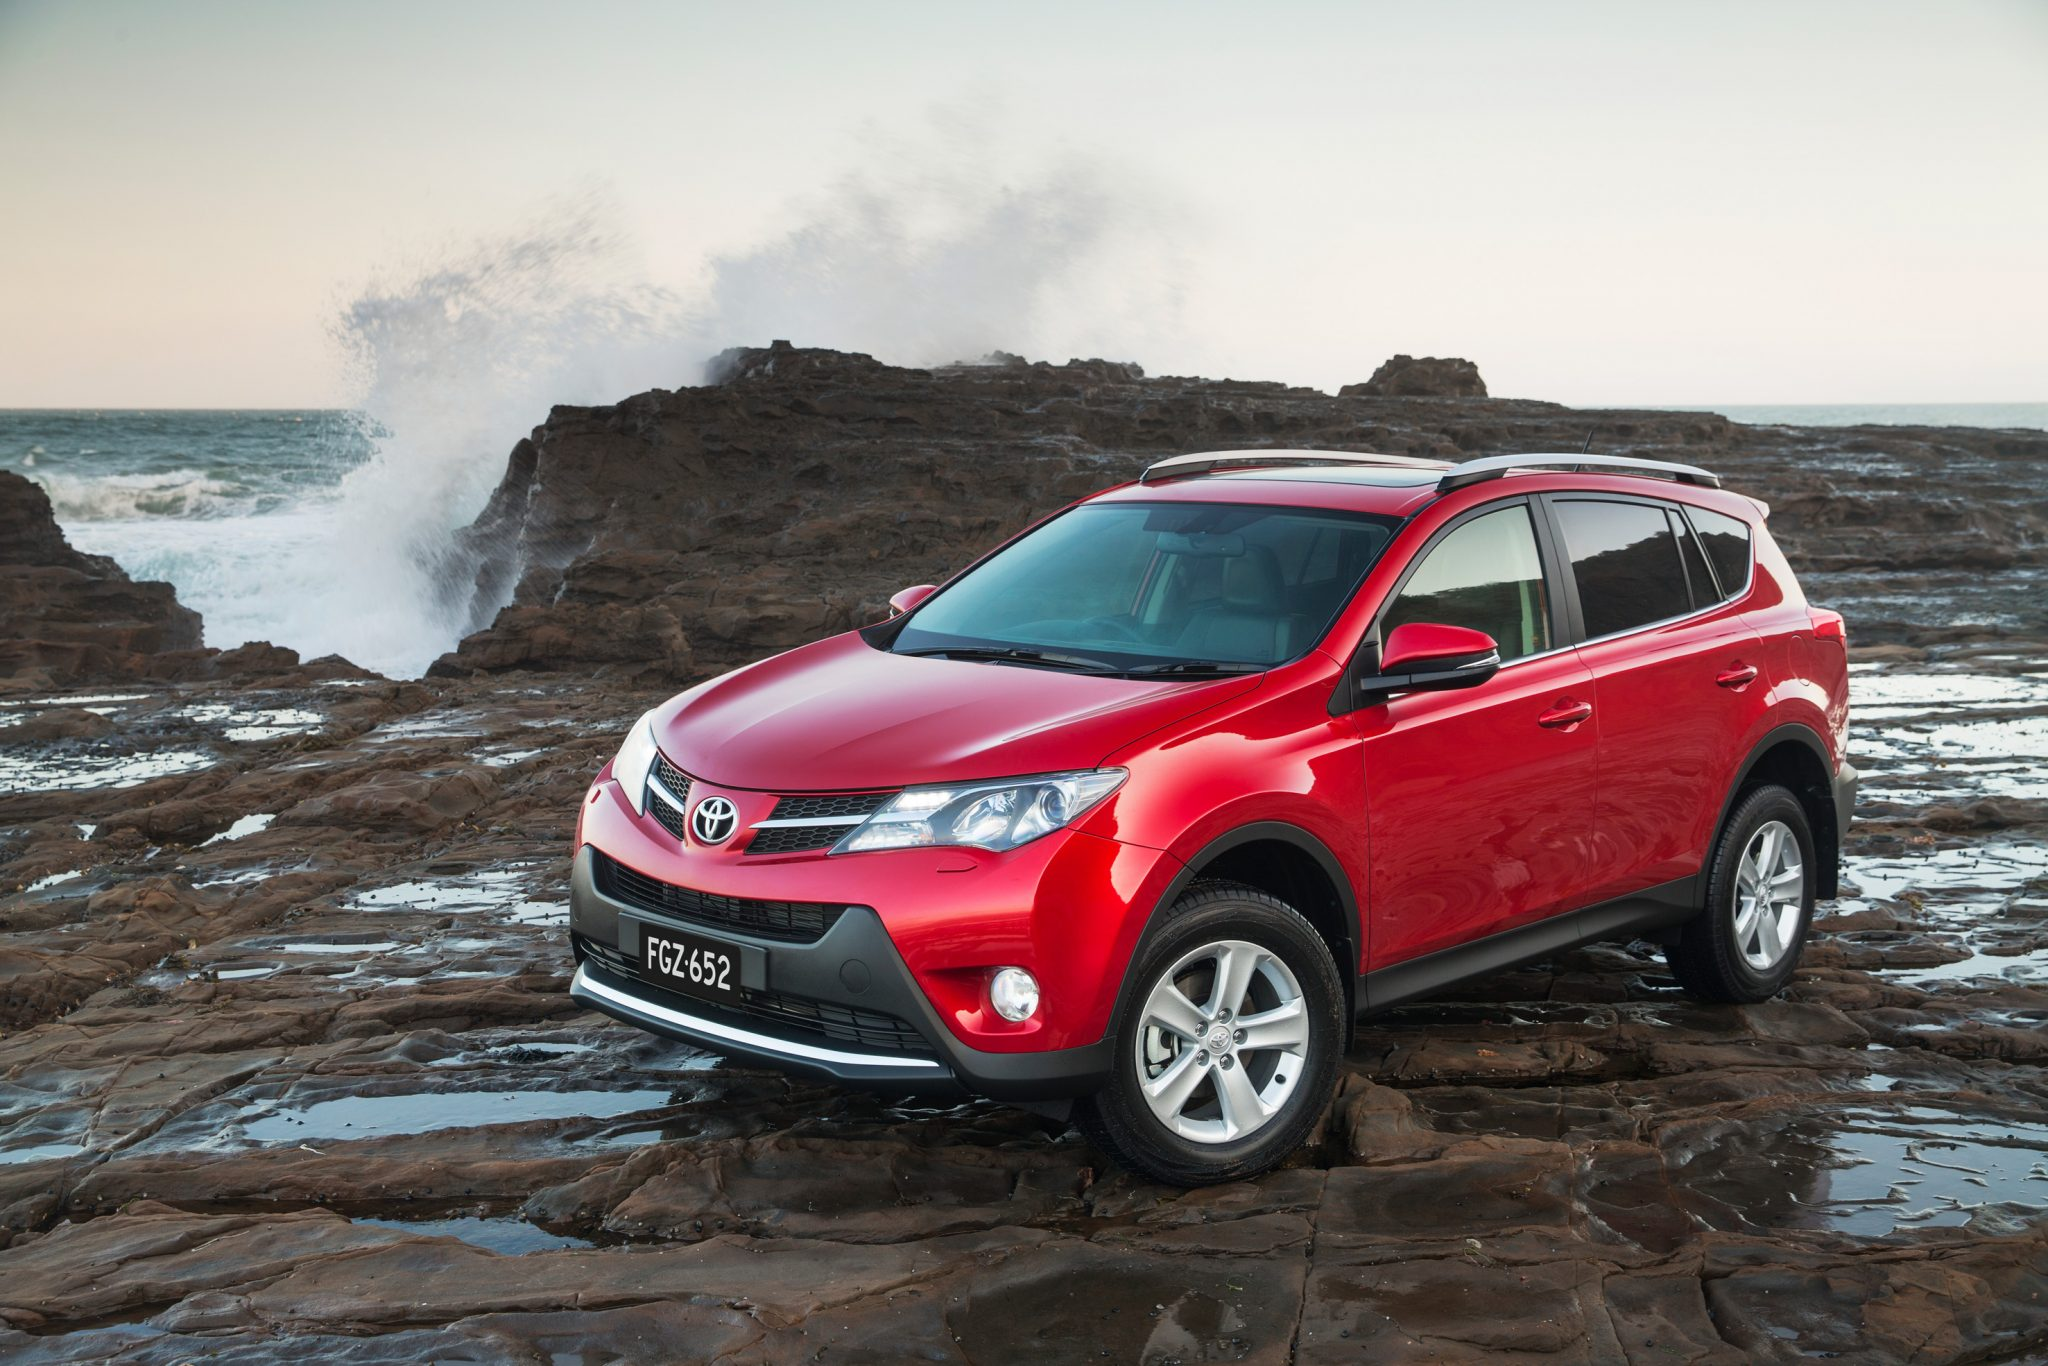 2013 Toyota RAV4 launched in Australia